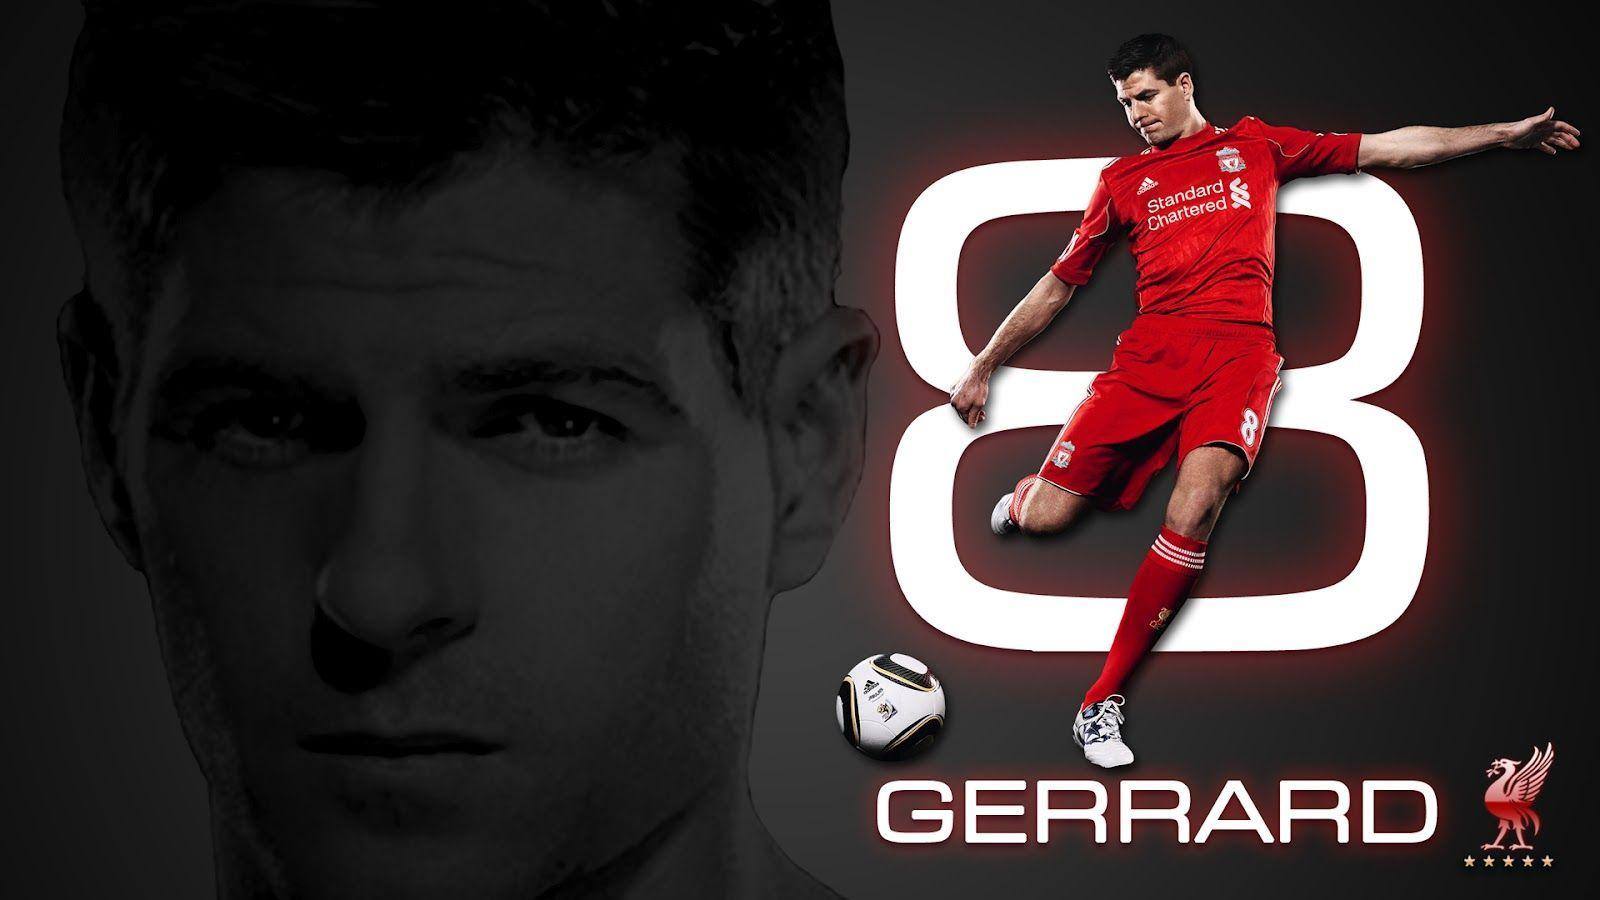 Steven Gerrard Wallpapers Wallpaper Cave